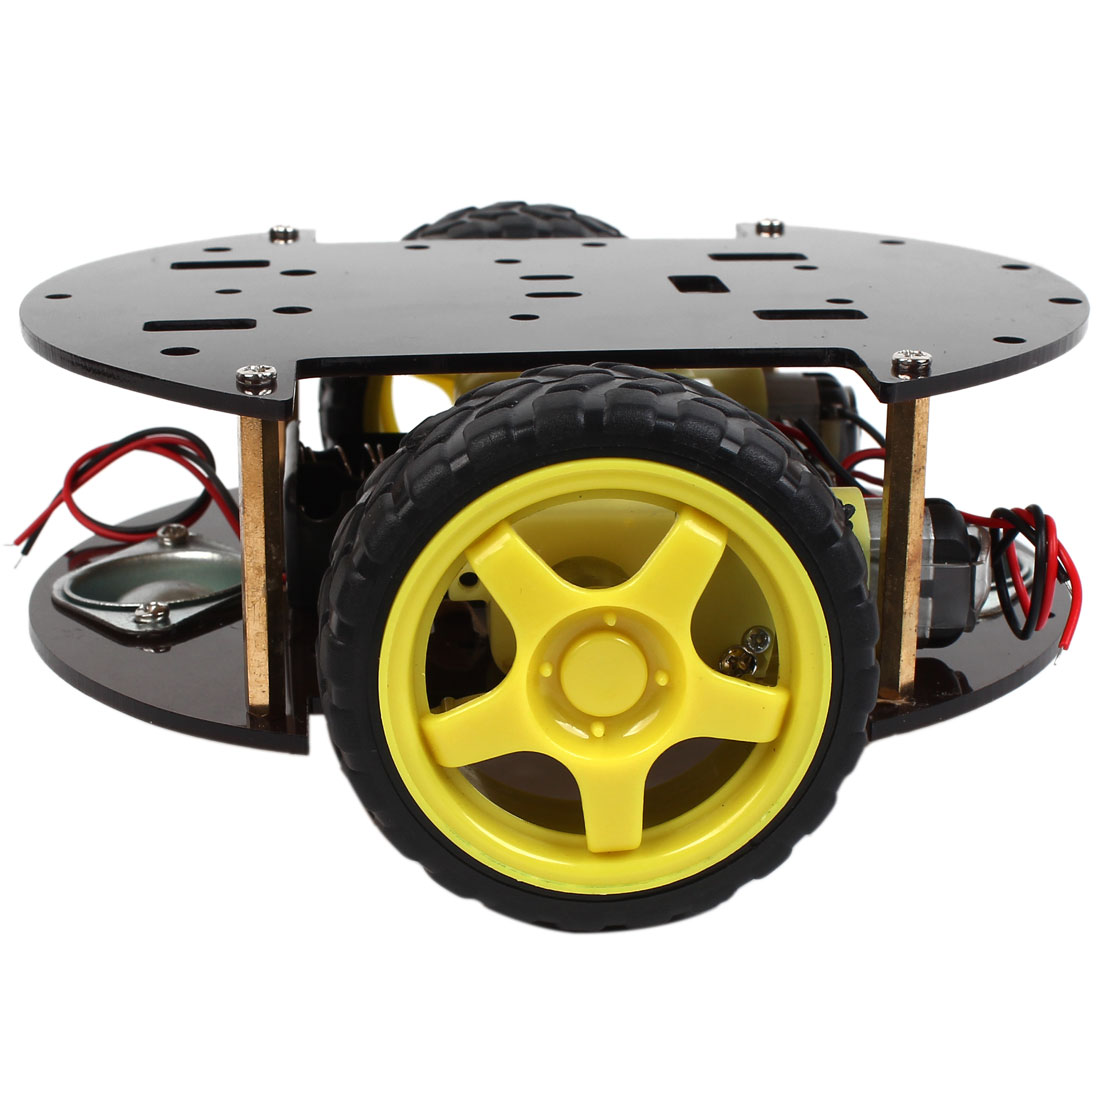 IR Remote Control 2WD Smart Car Robot Chassis w Battery Case